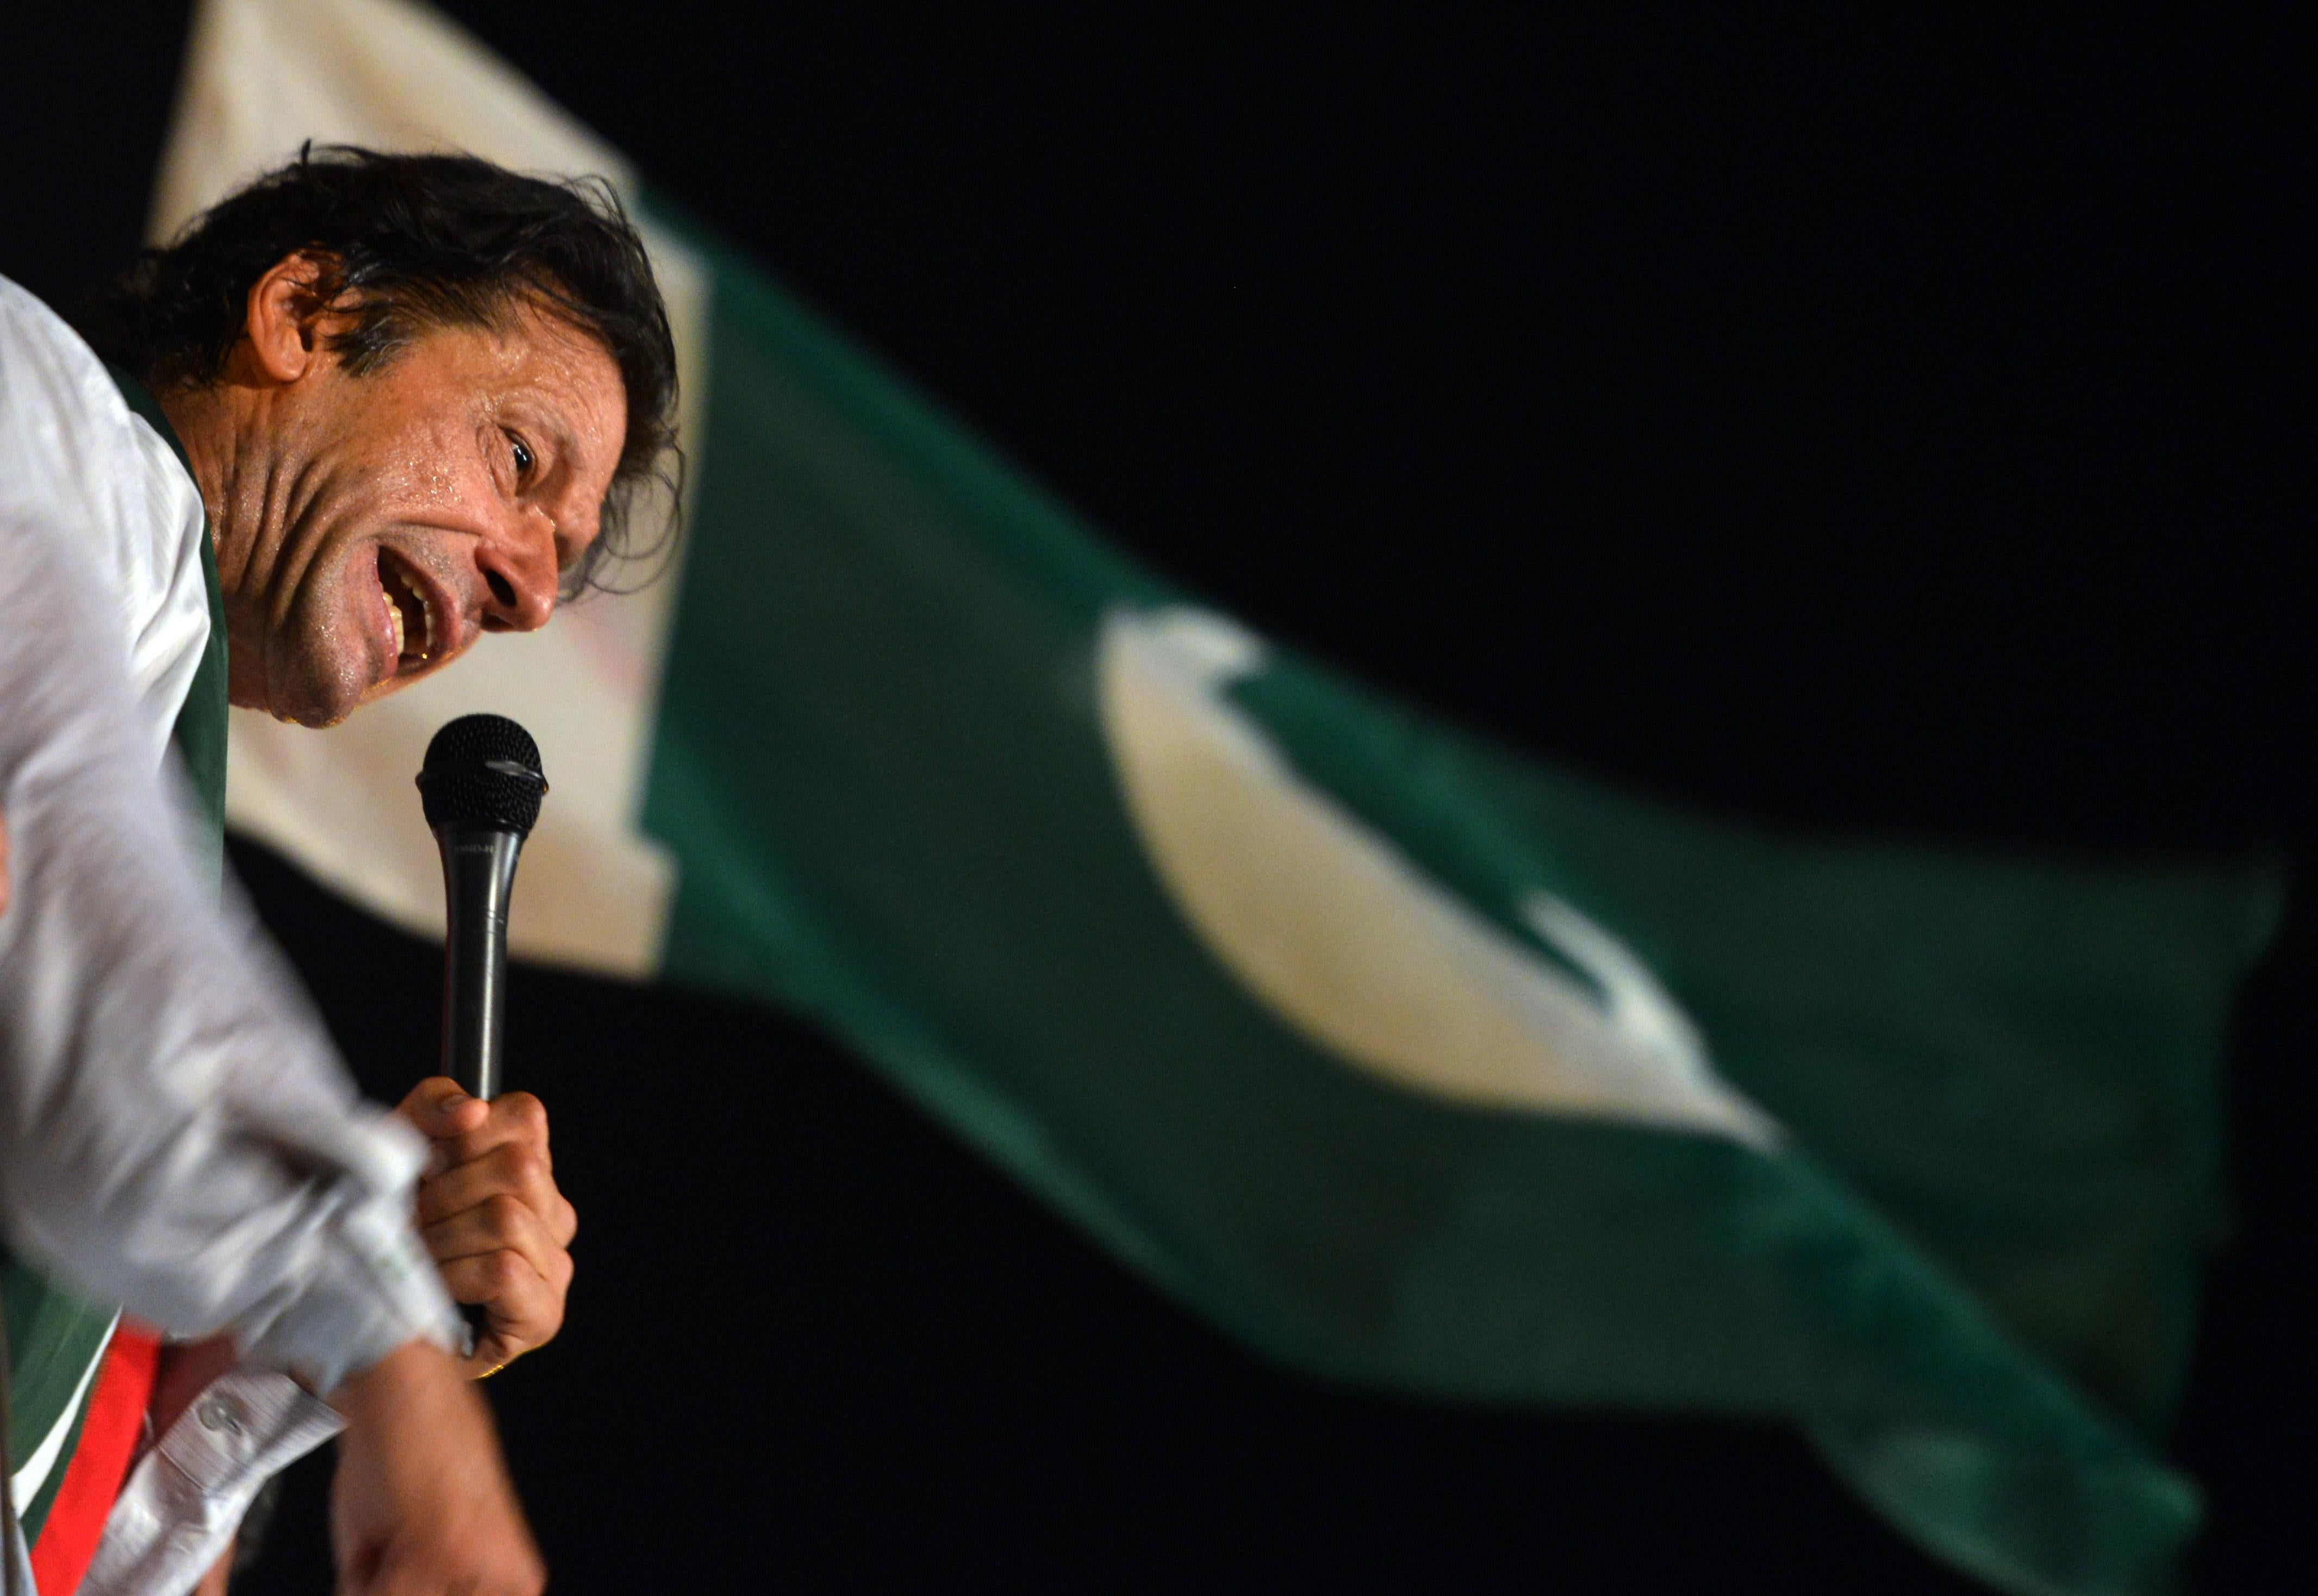 Pakistani opposition politician Imran Khan addresses his supporters during an anti-government protest in front of the Parliament building in Islamabad on August 21, 2014. Pakistani opposition politician Imran Khan on August 21, 2014 called off talks with the government aimed at ending protests seeking the fall of the prime minister, which have unnerved the nuclear-armed nation. Khan and populist cleric Tahir-ul-Qadri have led followers protesting outside parliament for the past two days demanding Prime Minister Nawaz Sharif quit.  AFP PHOTO/ AAMIR QURESHI        (Photo credit should read AAMIR QURESHI/AFP/Getty Images)